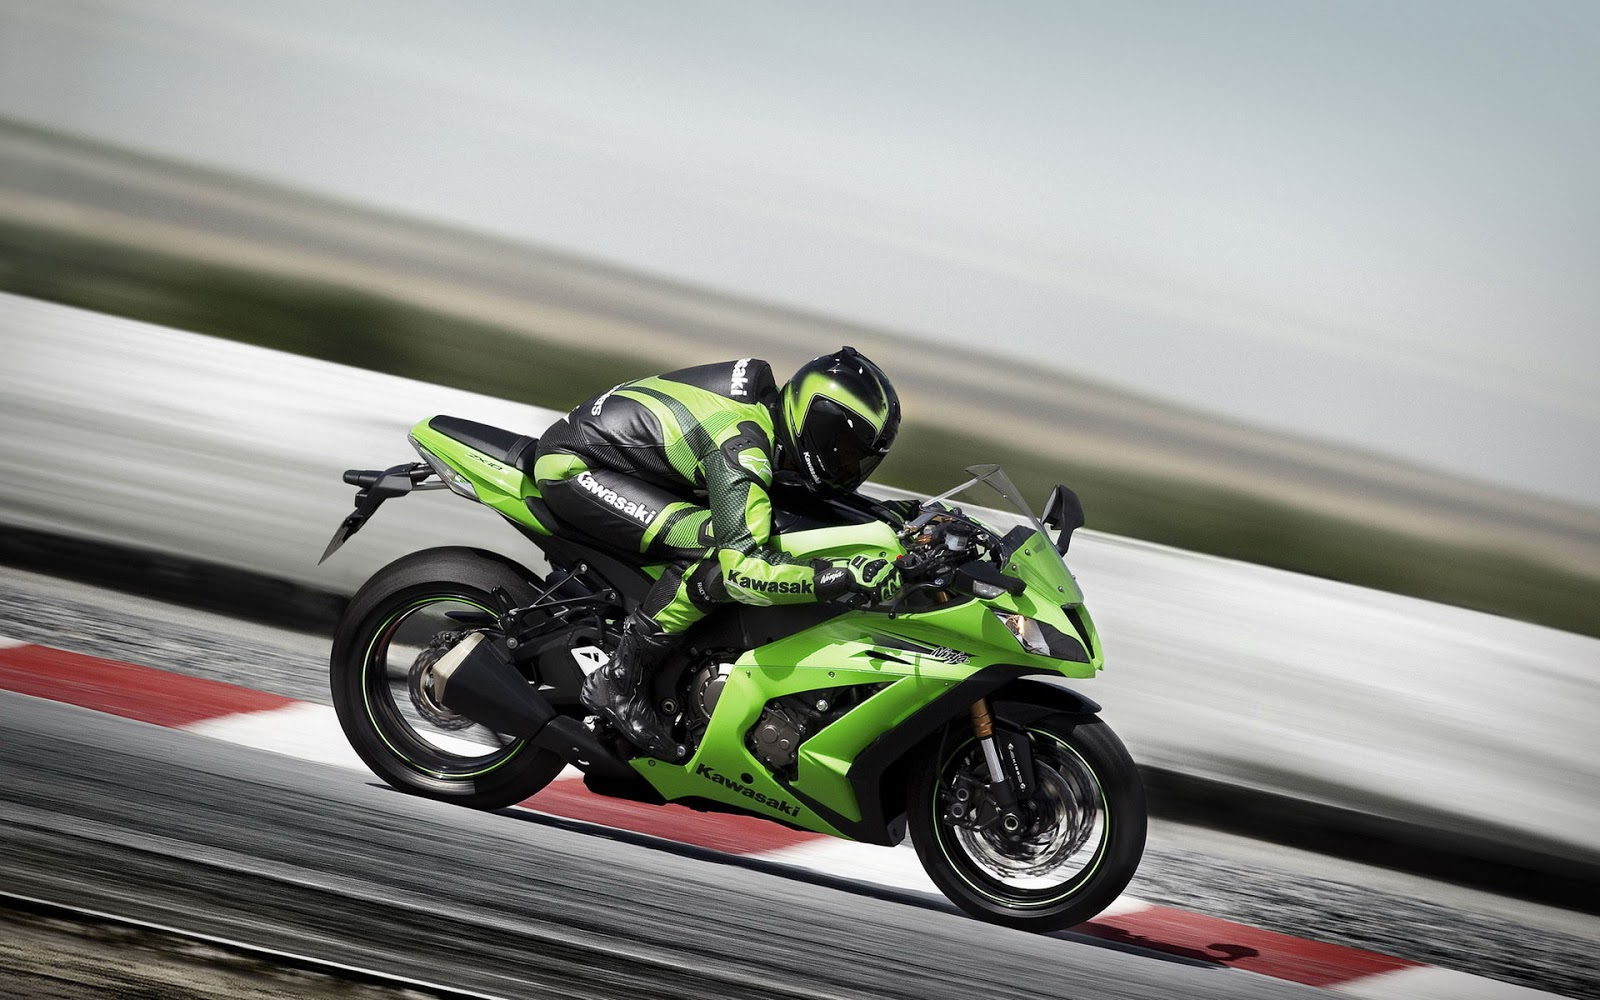 The Big Monster Machine named as Ninja ZX 14R and Ninja ZX 10R